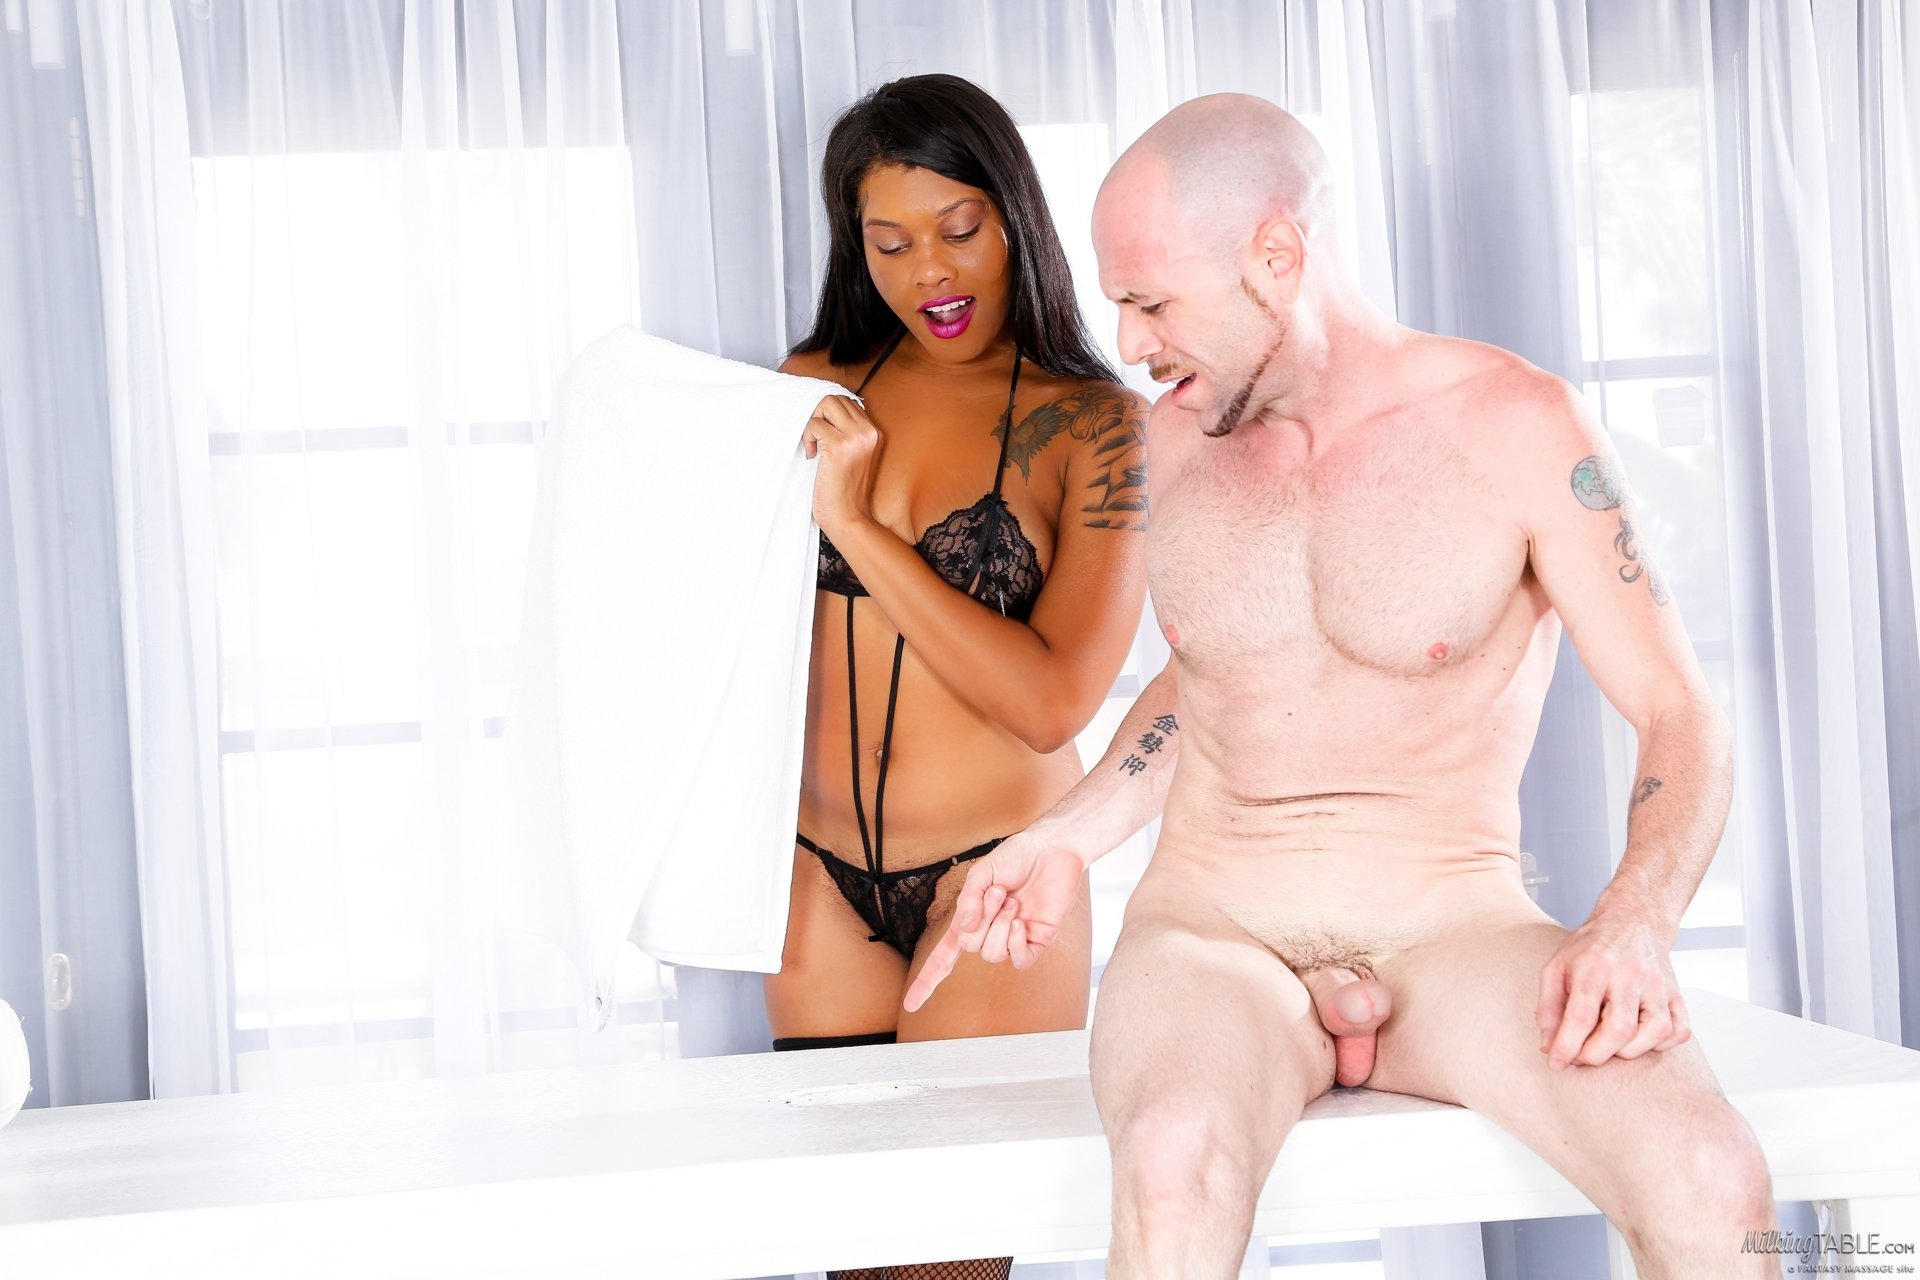 Enjoyable beauty receives facial castigation during bdsm play add photo